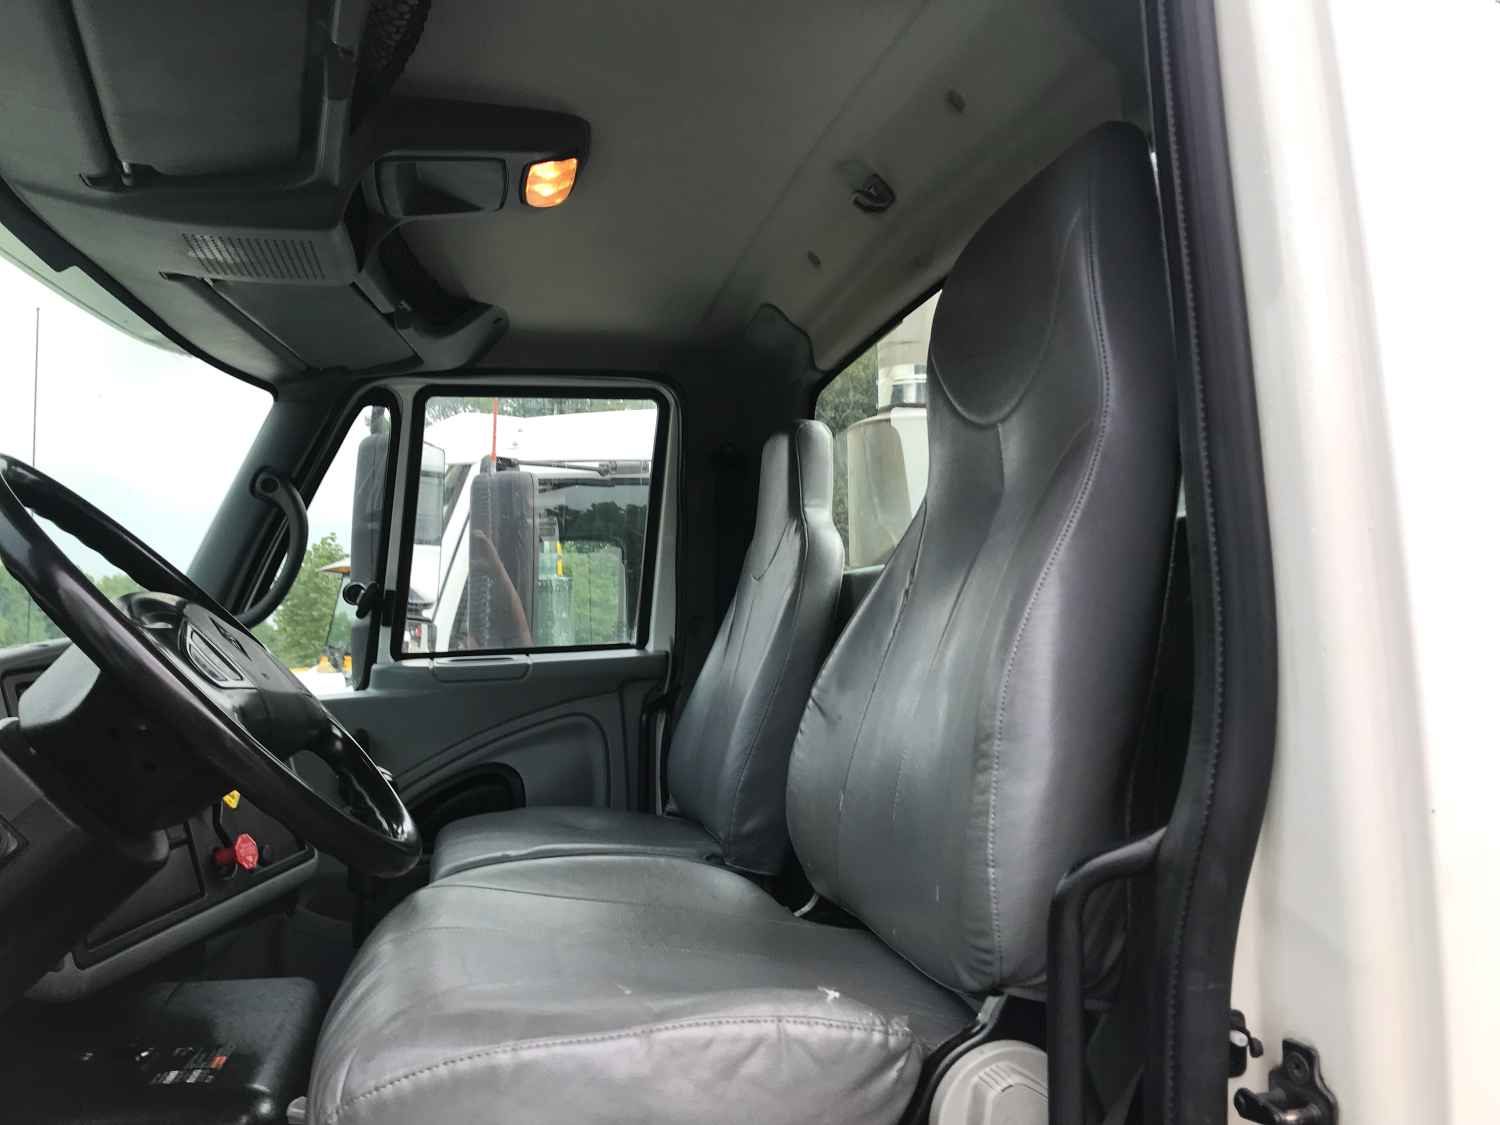 Used Toter Trucks for Sale | B & G Truck Conversions Inc